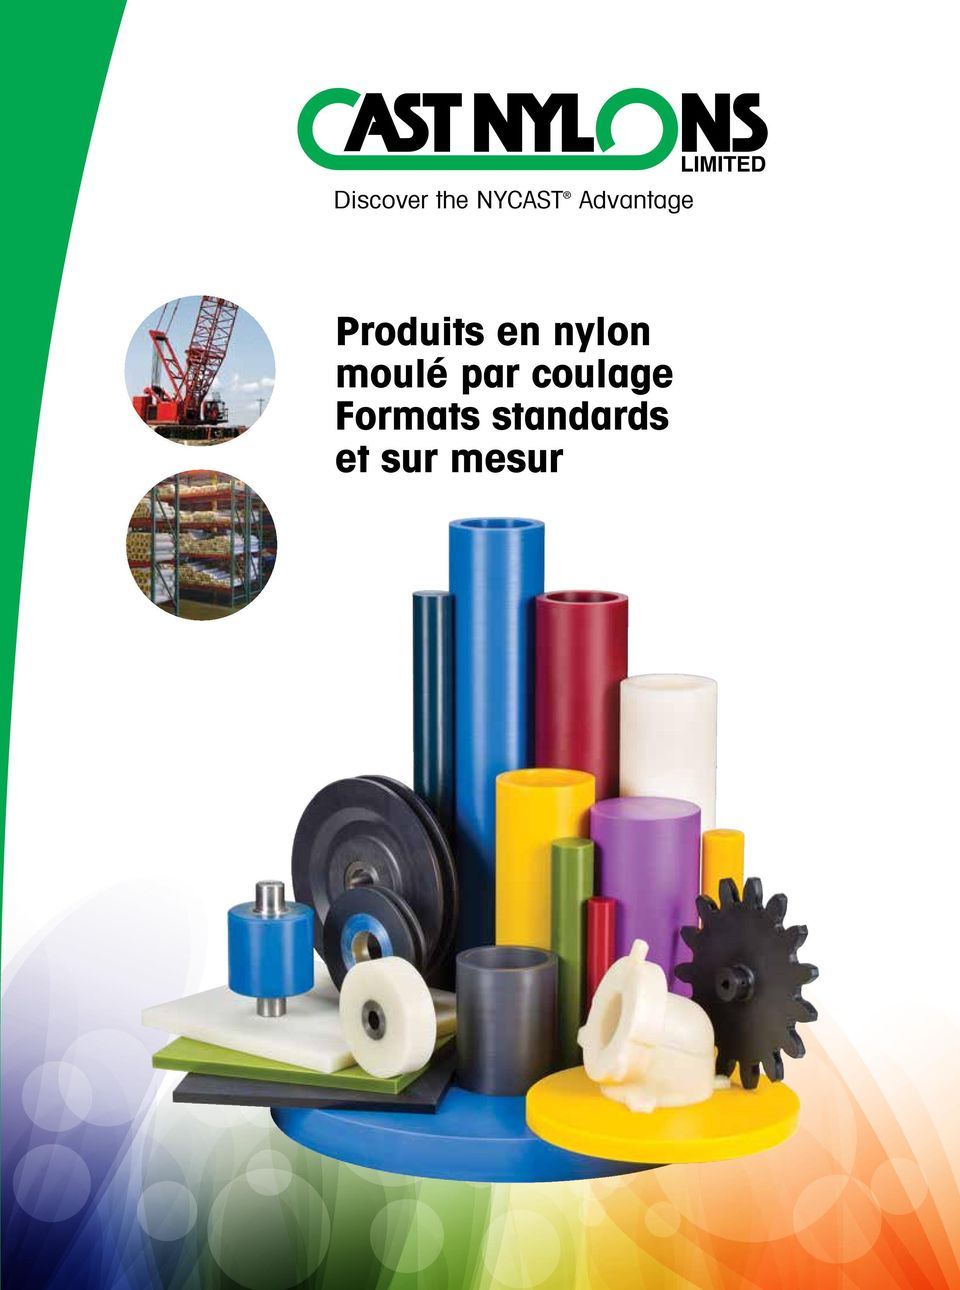 nylon moulé par coulage